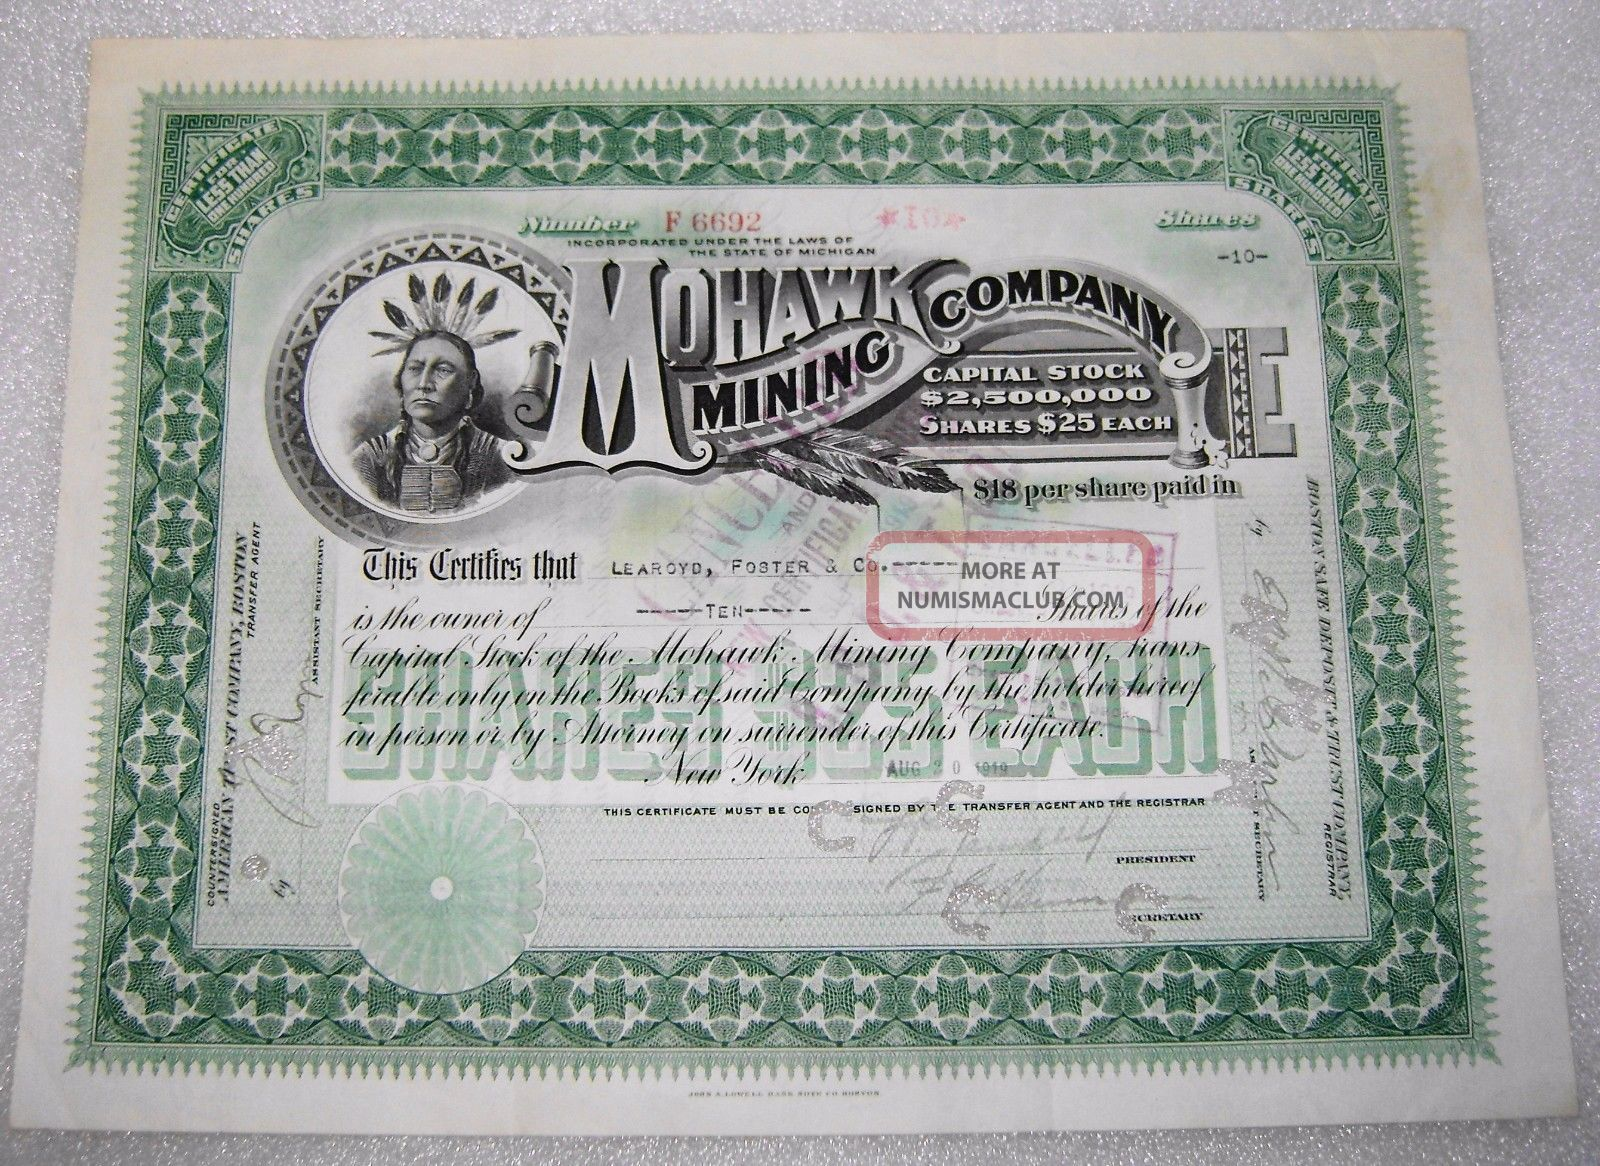 Antique Michigan Mohawk Mining Company Native American Stock Certificate 1919 Stocks & Bonds, Scripophily photo